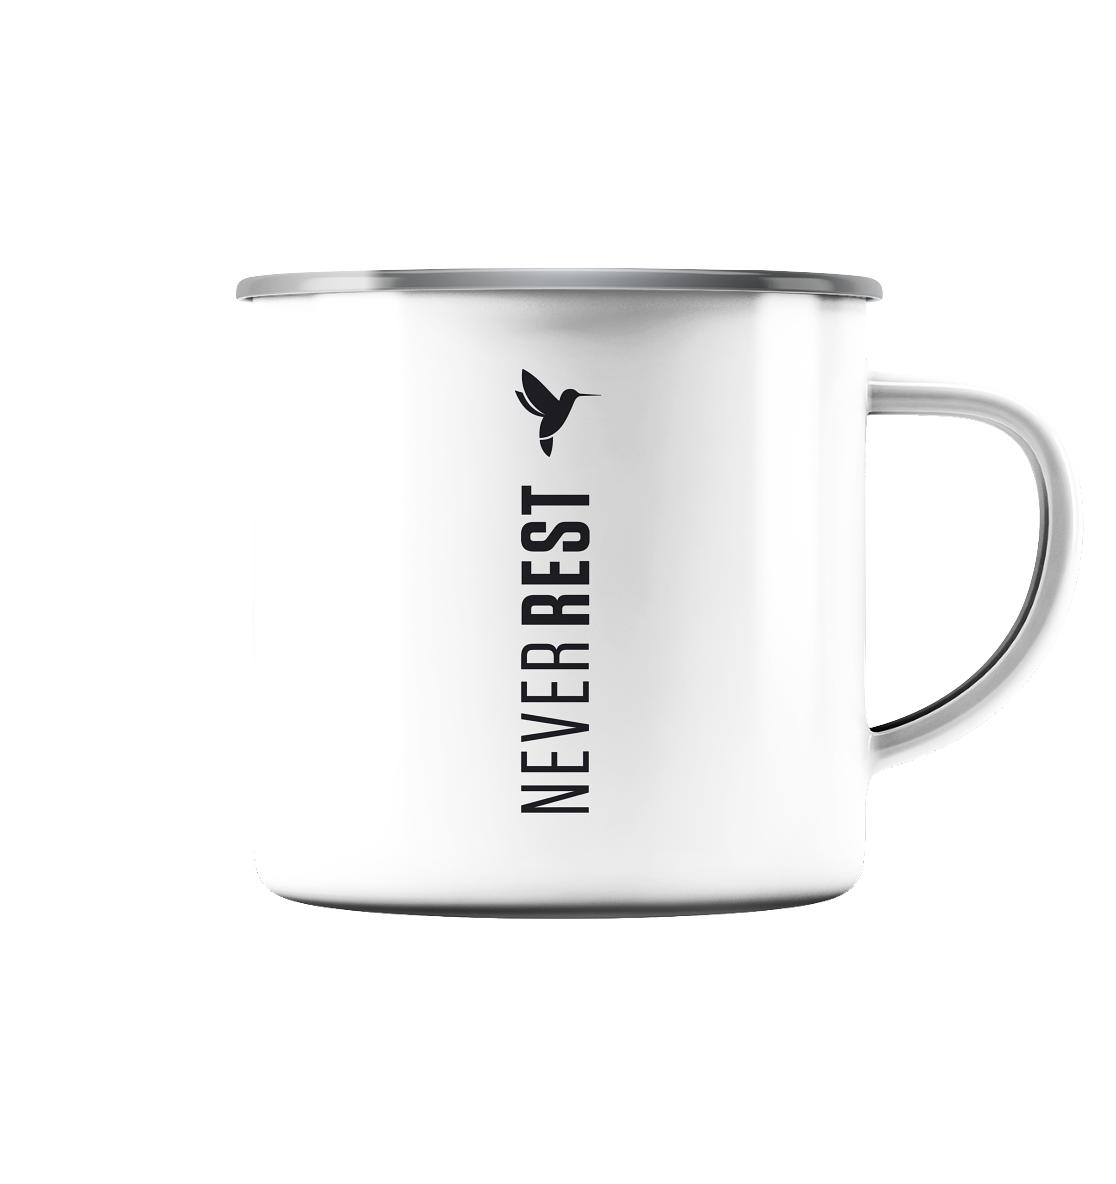 NV Bird - Emaille Tasse